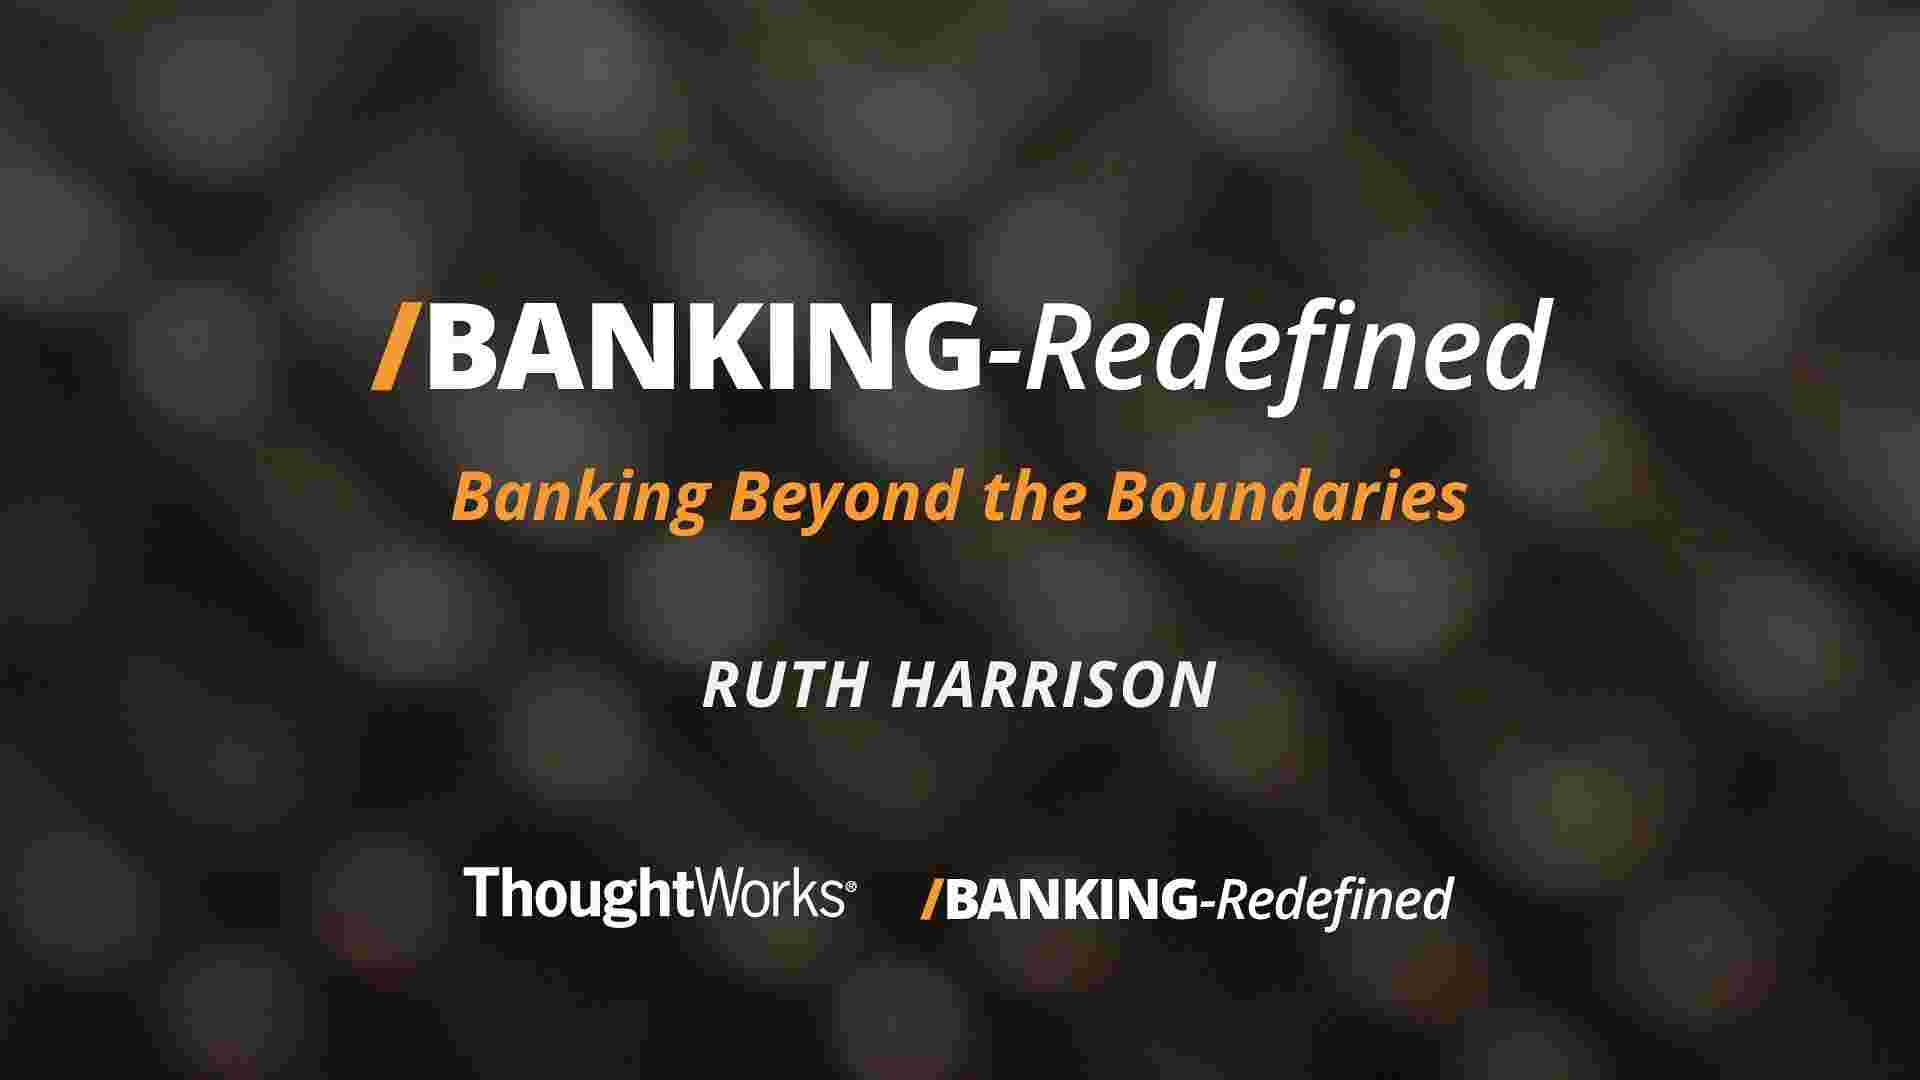 Banking beyond the boundaries presentation